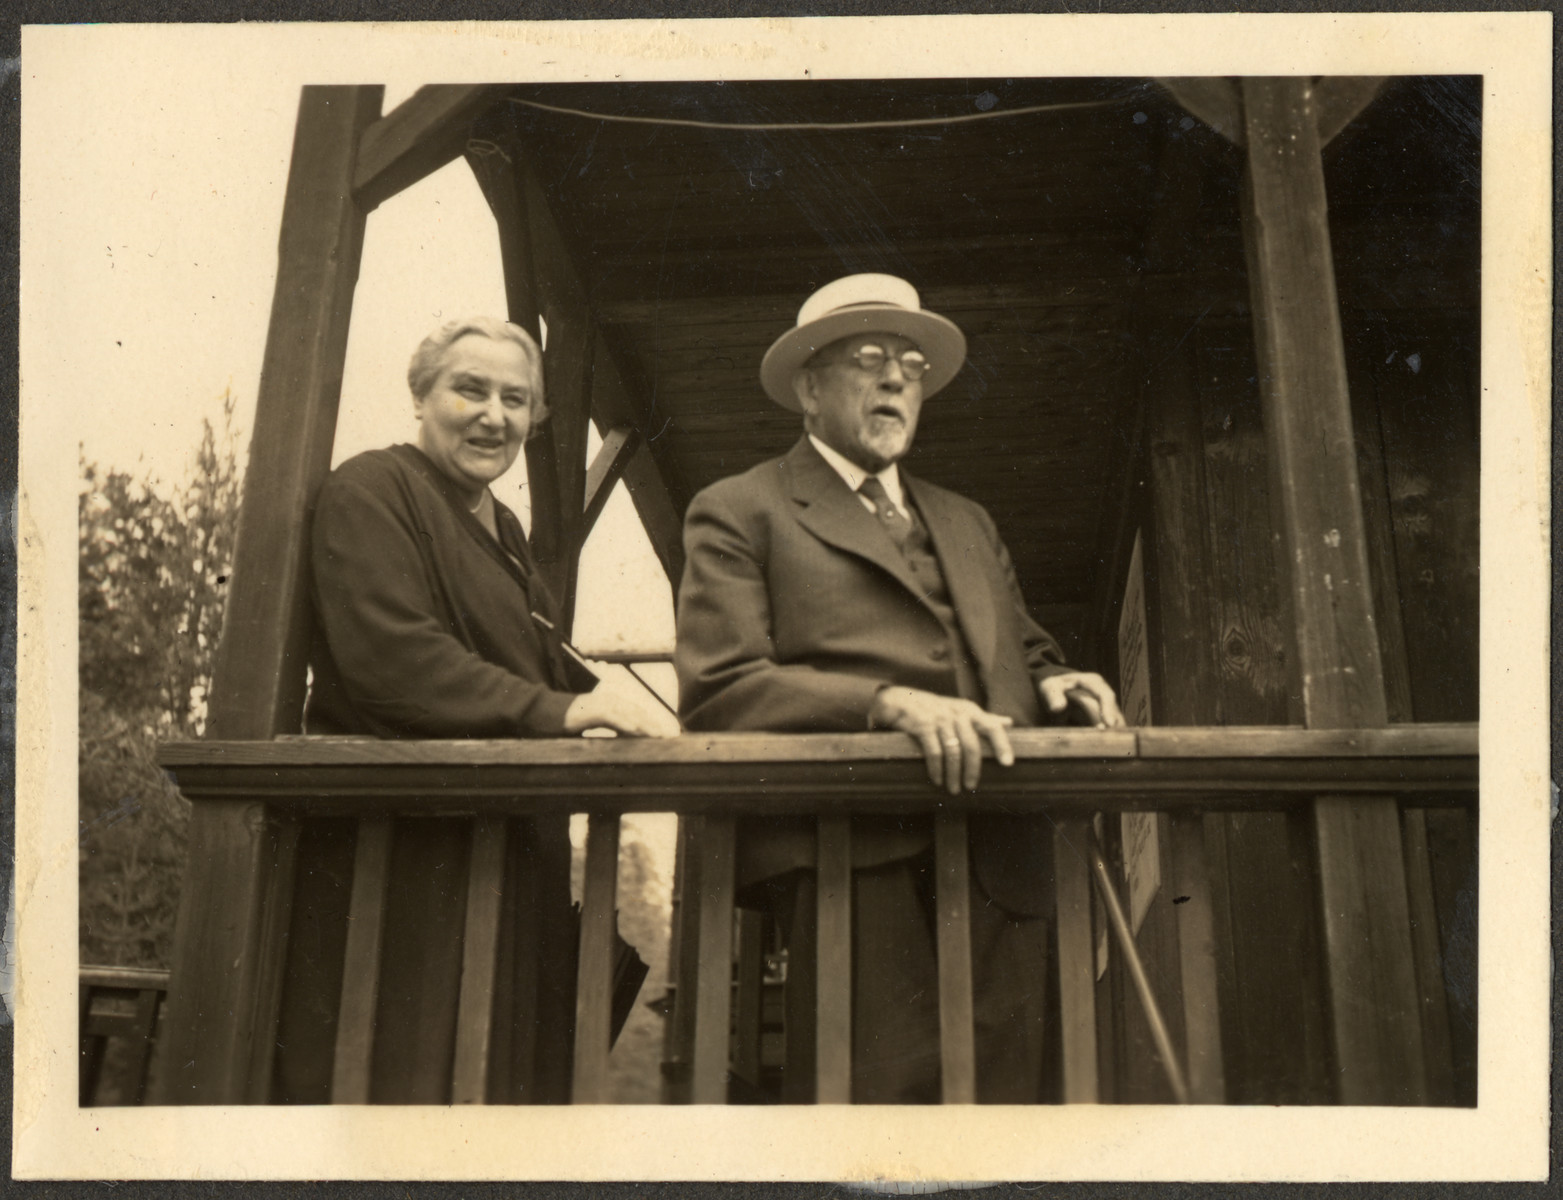 Bela and Leo Stern (the great-grandparents of the donor) pose on the balcony of a wooden building.